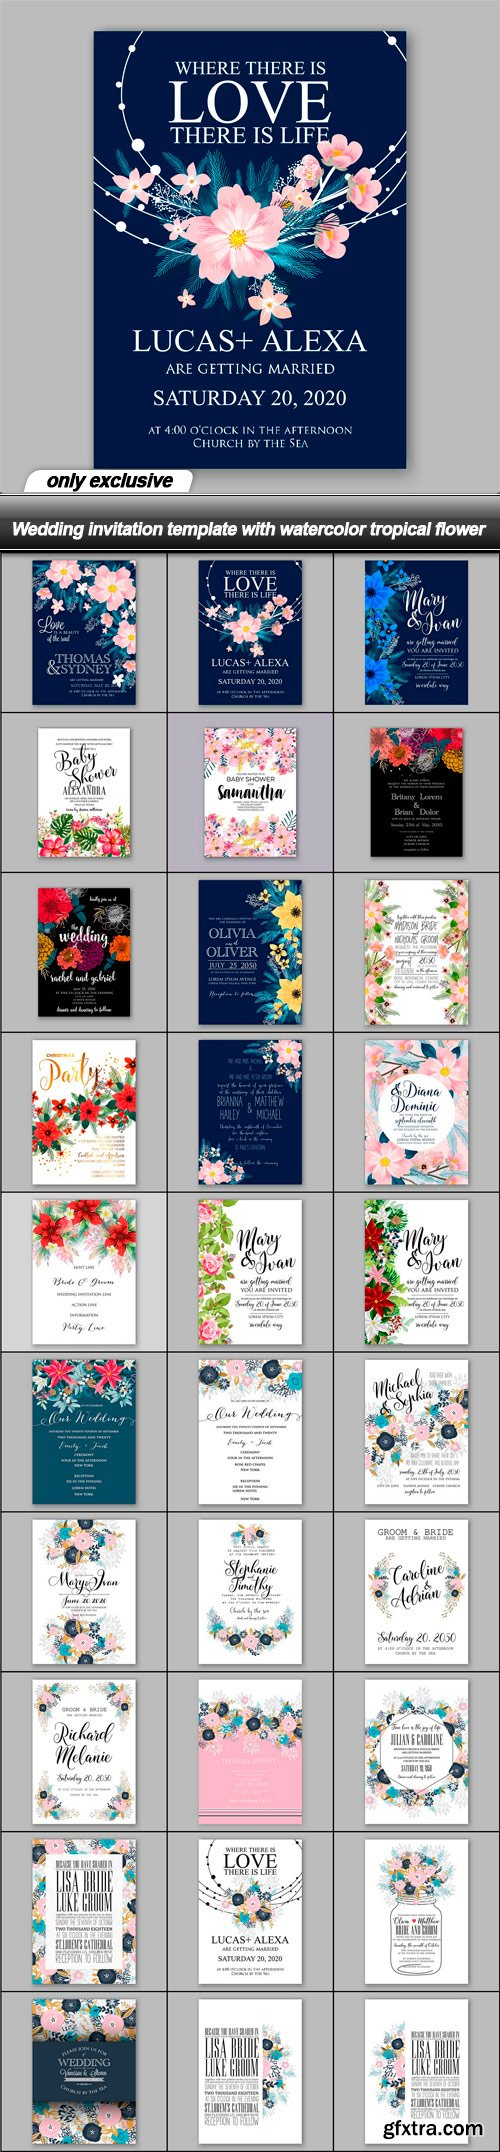 Wedding invitation template with watercolor tropical flower - 30 EPS